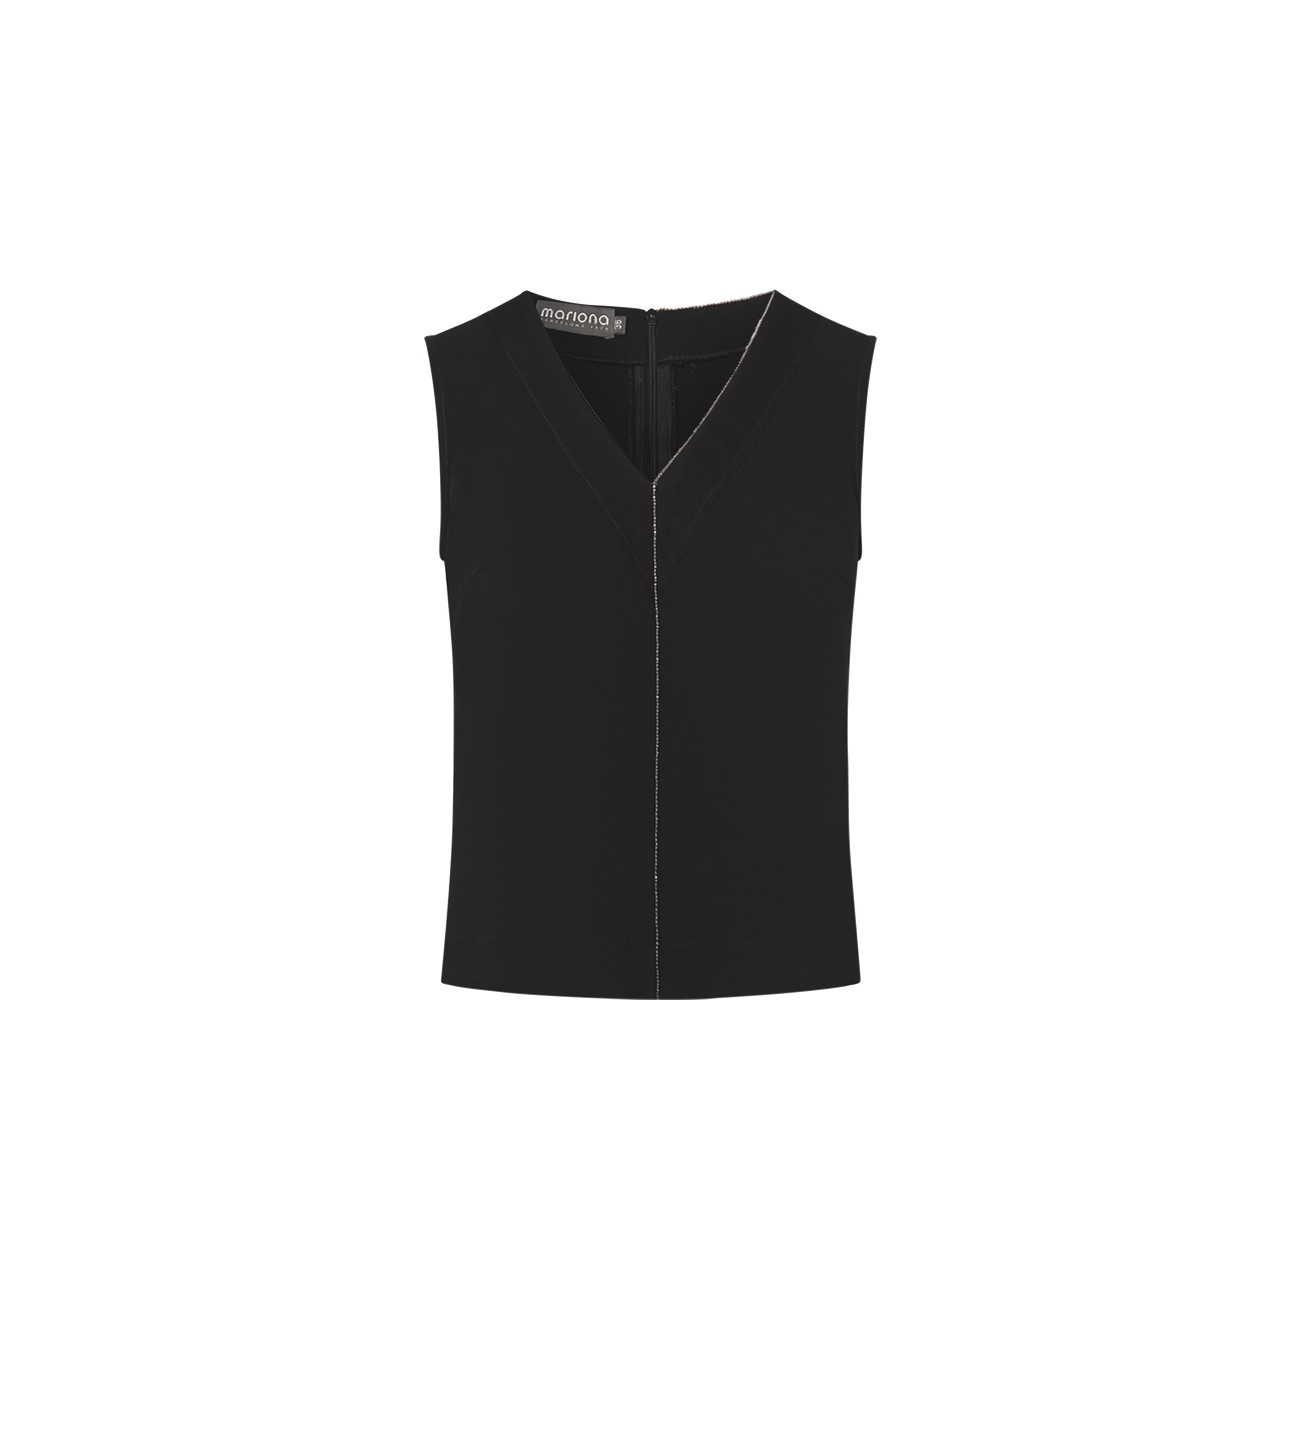 MARIONA_V_NECK_TOP_WITH_TULLE_AND_METALLIC_DETAIL_MARIONA_FASHION_CLOTHING_WOMAN_SHOP_ONLINE_5118H